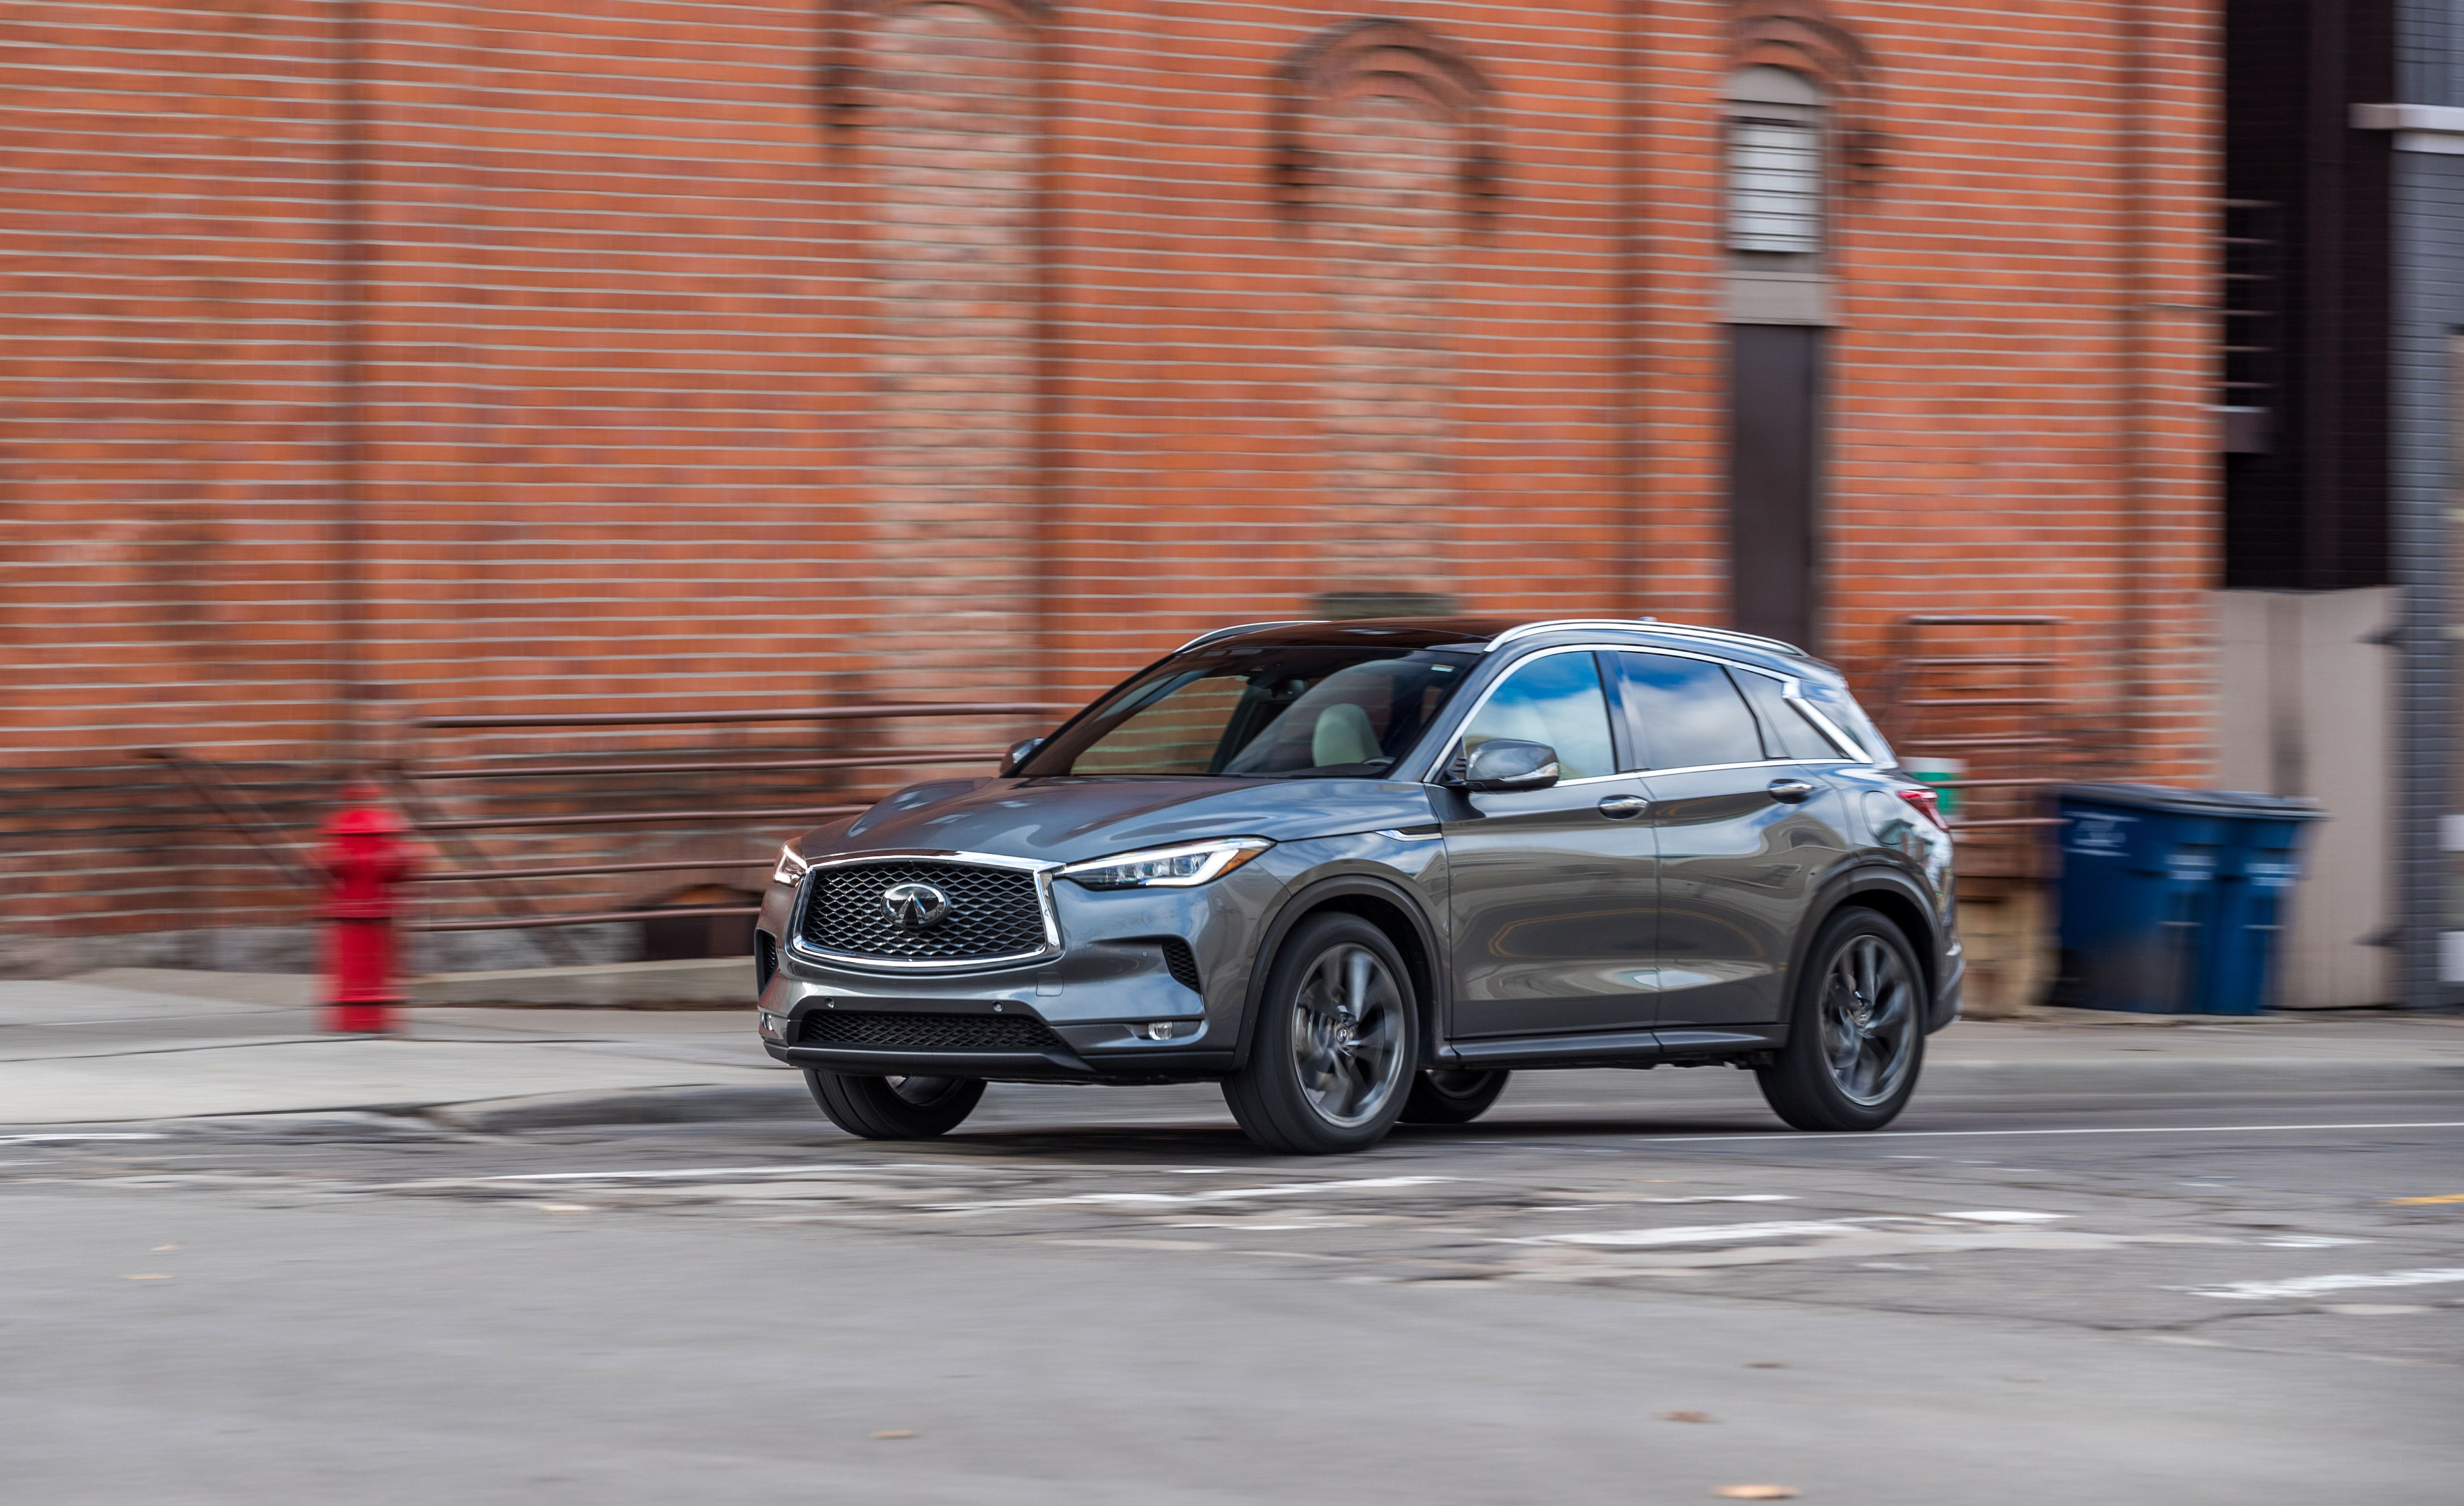 How Reliable Is the 2019 Infiniti QX50?